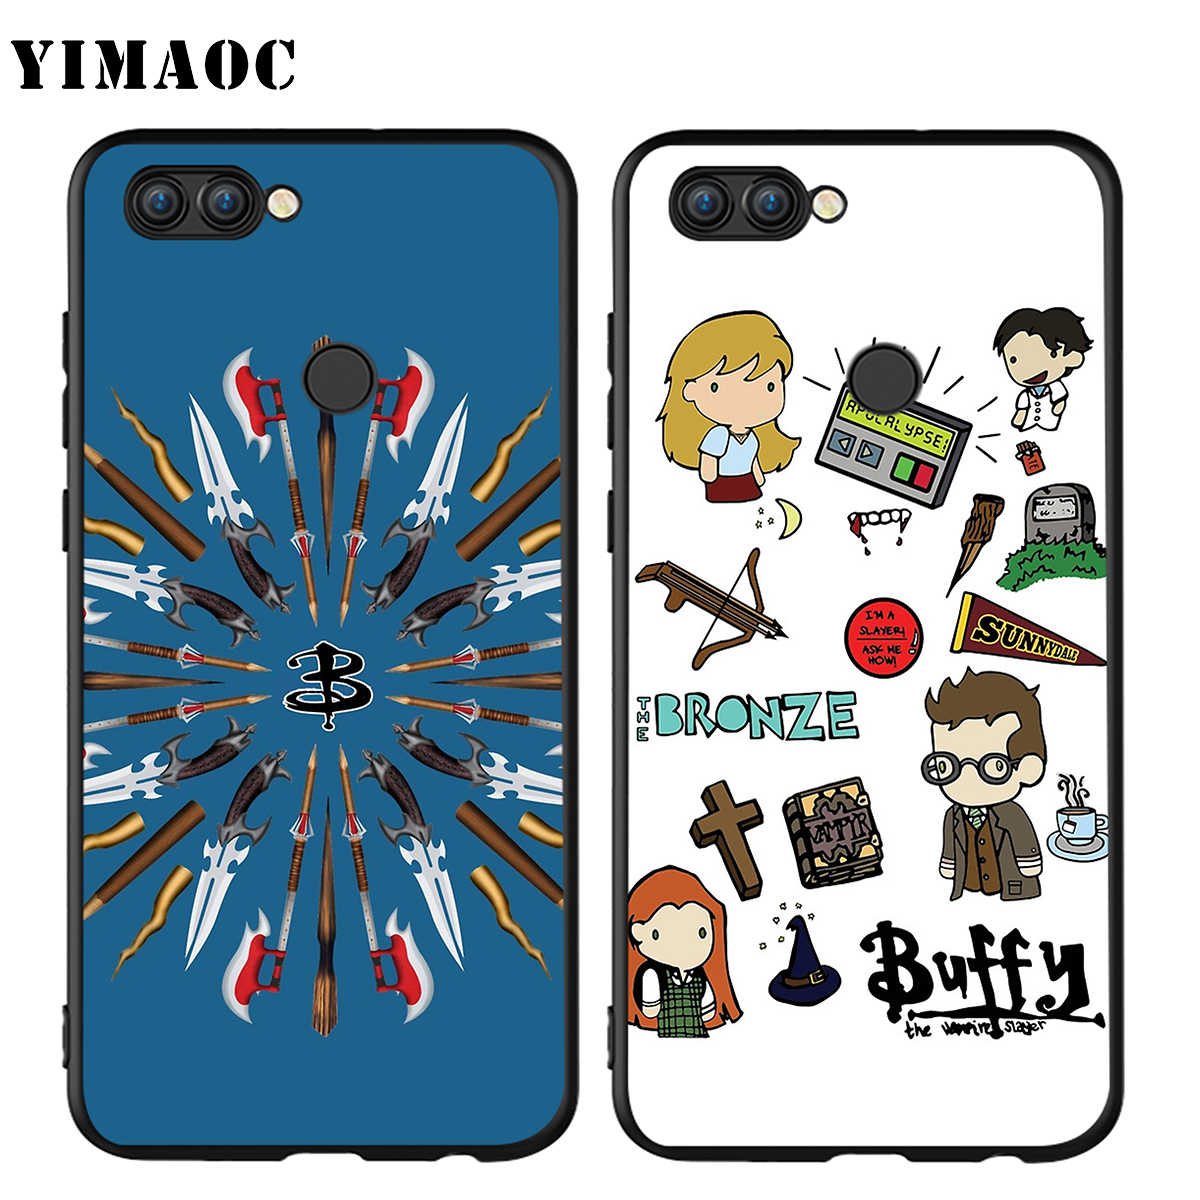 YIMAOC Buffy The Vampire Slayer di Caso per Huawei Mate 10 P8 P9 P10 P20 P30 P Smart Lite Pro Mini 2017